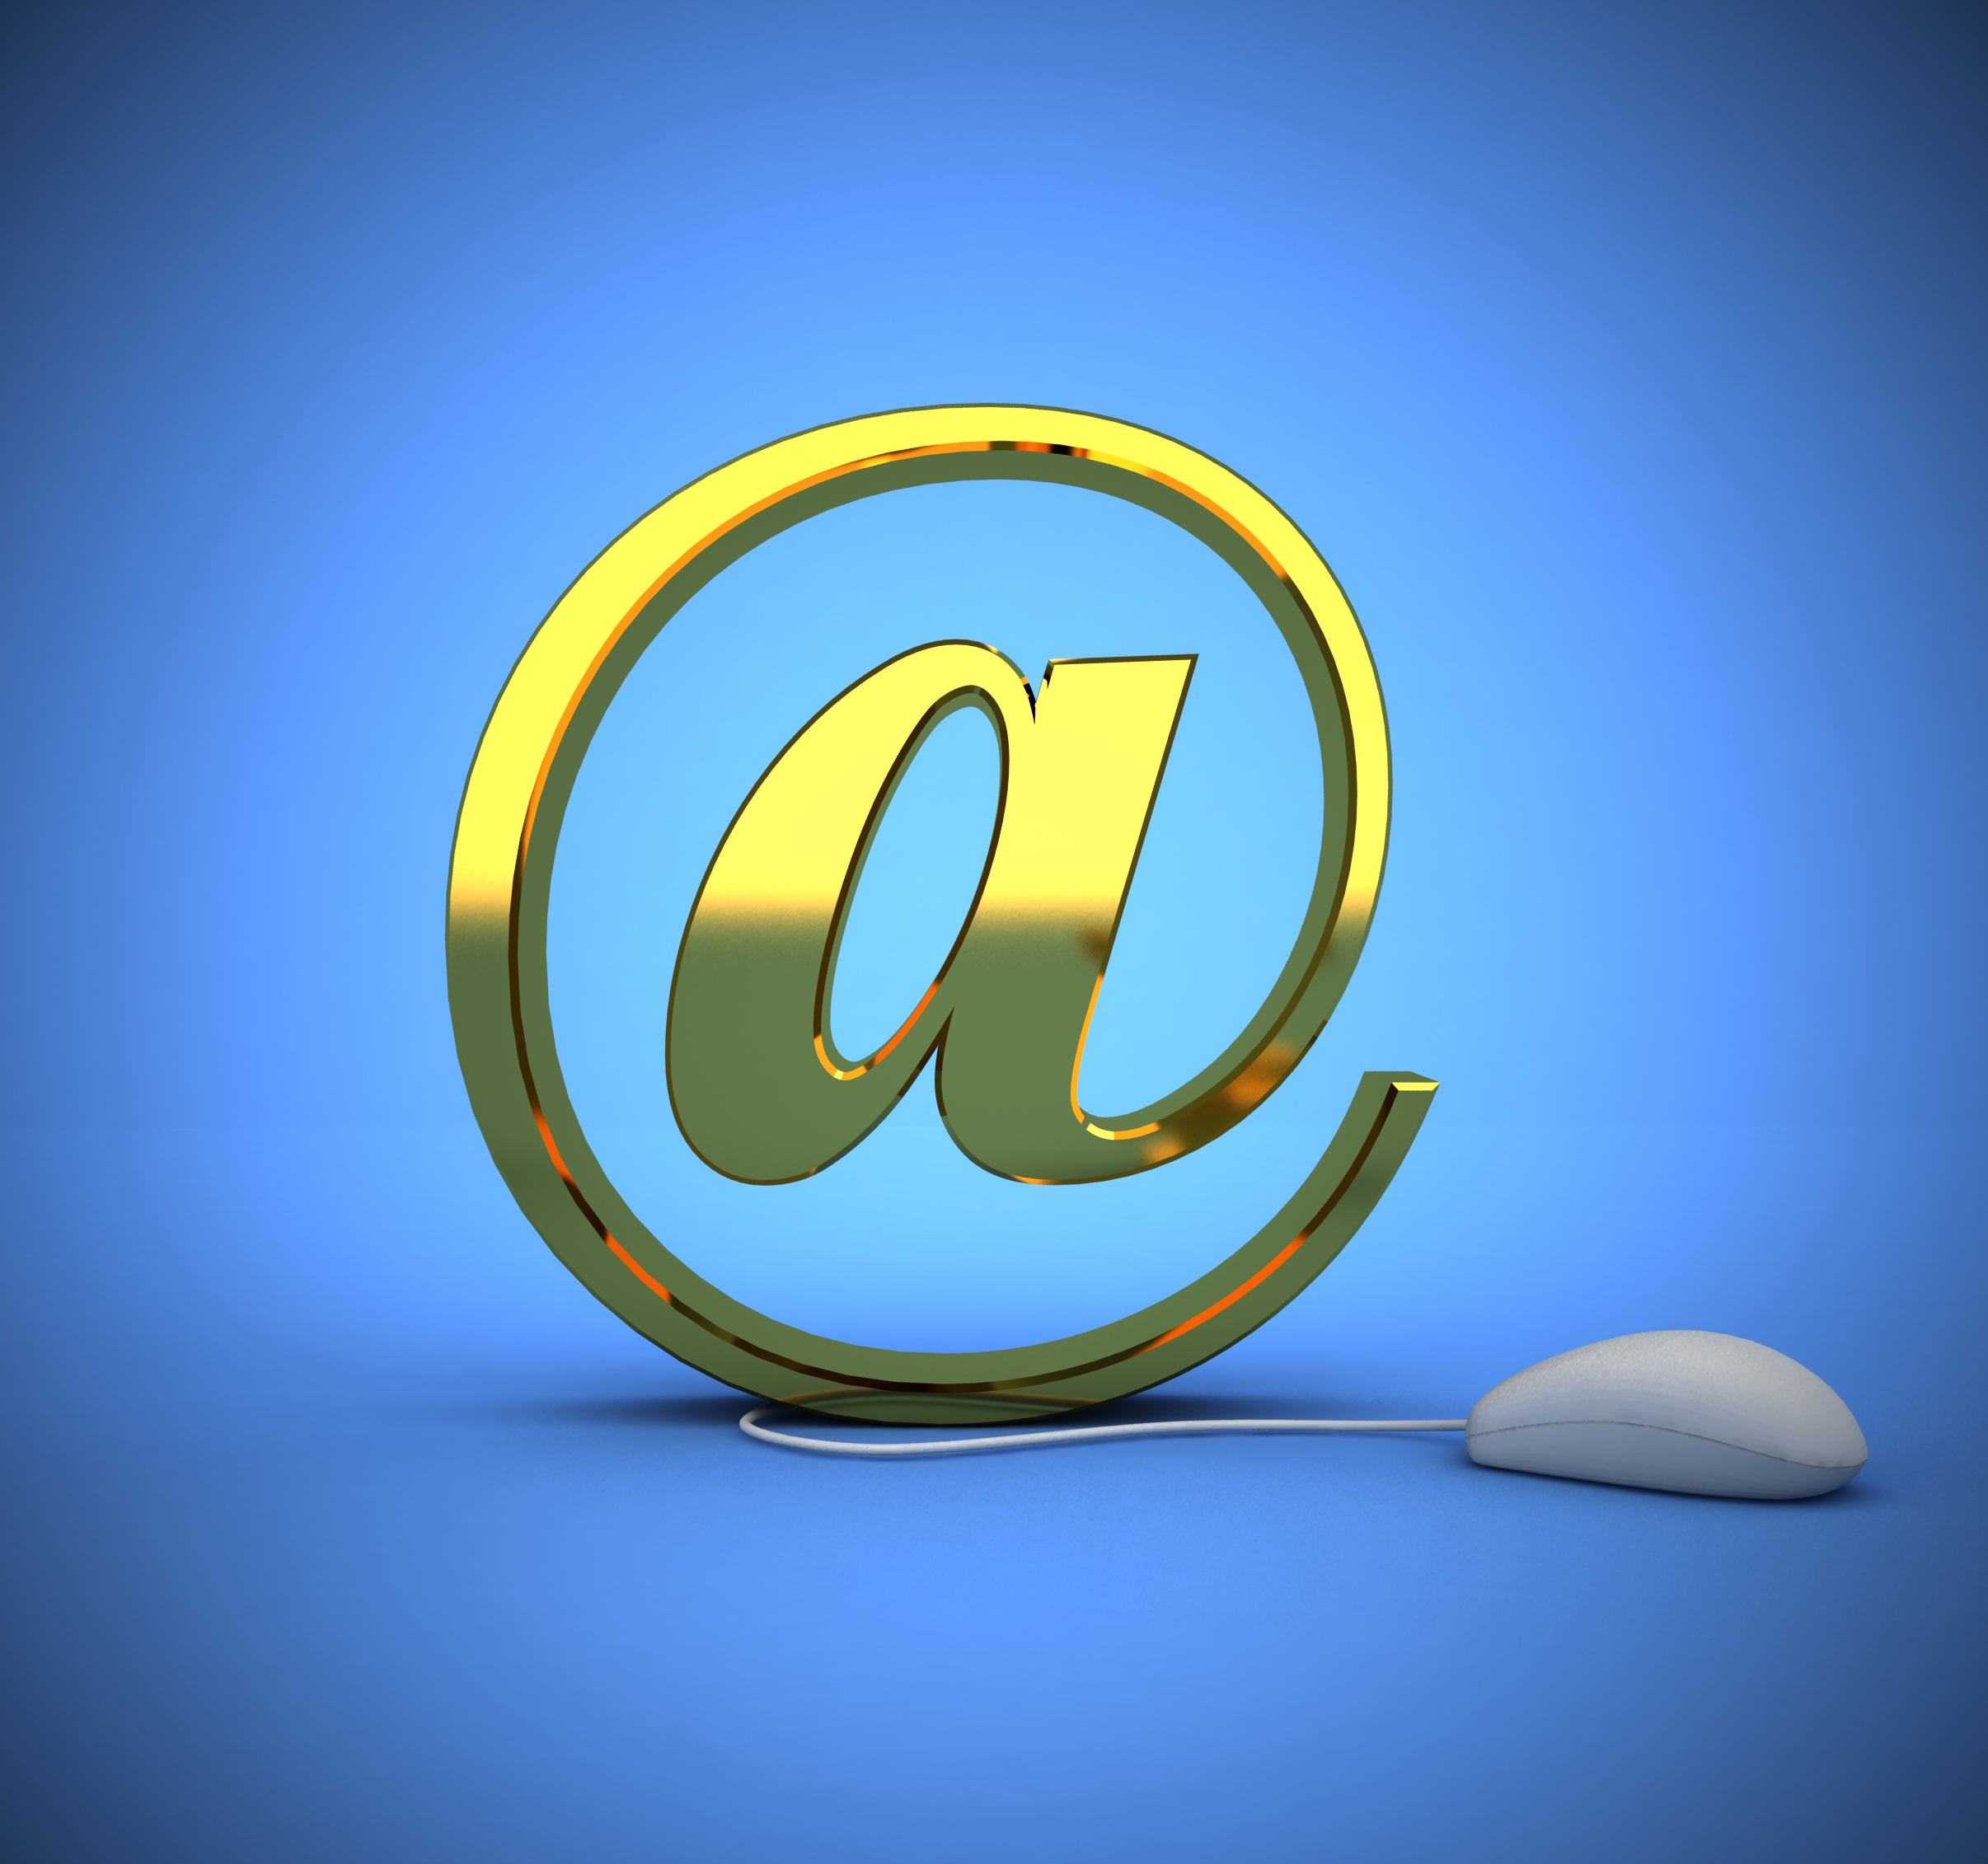 email at symbol mouse @.jpg